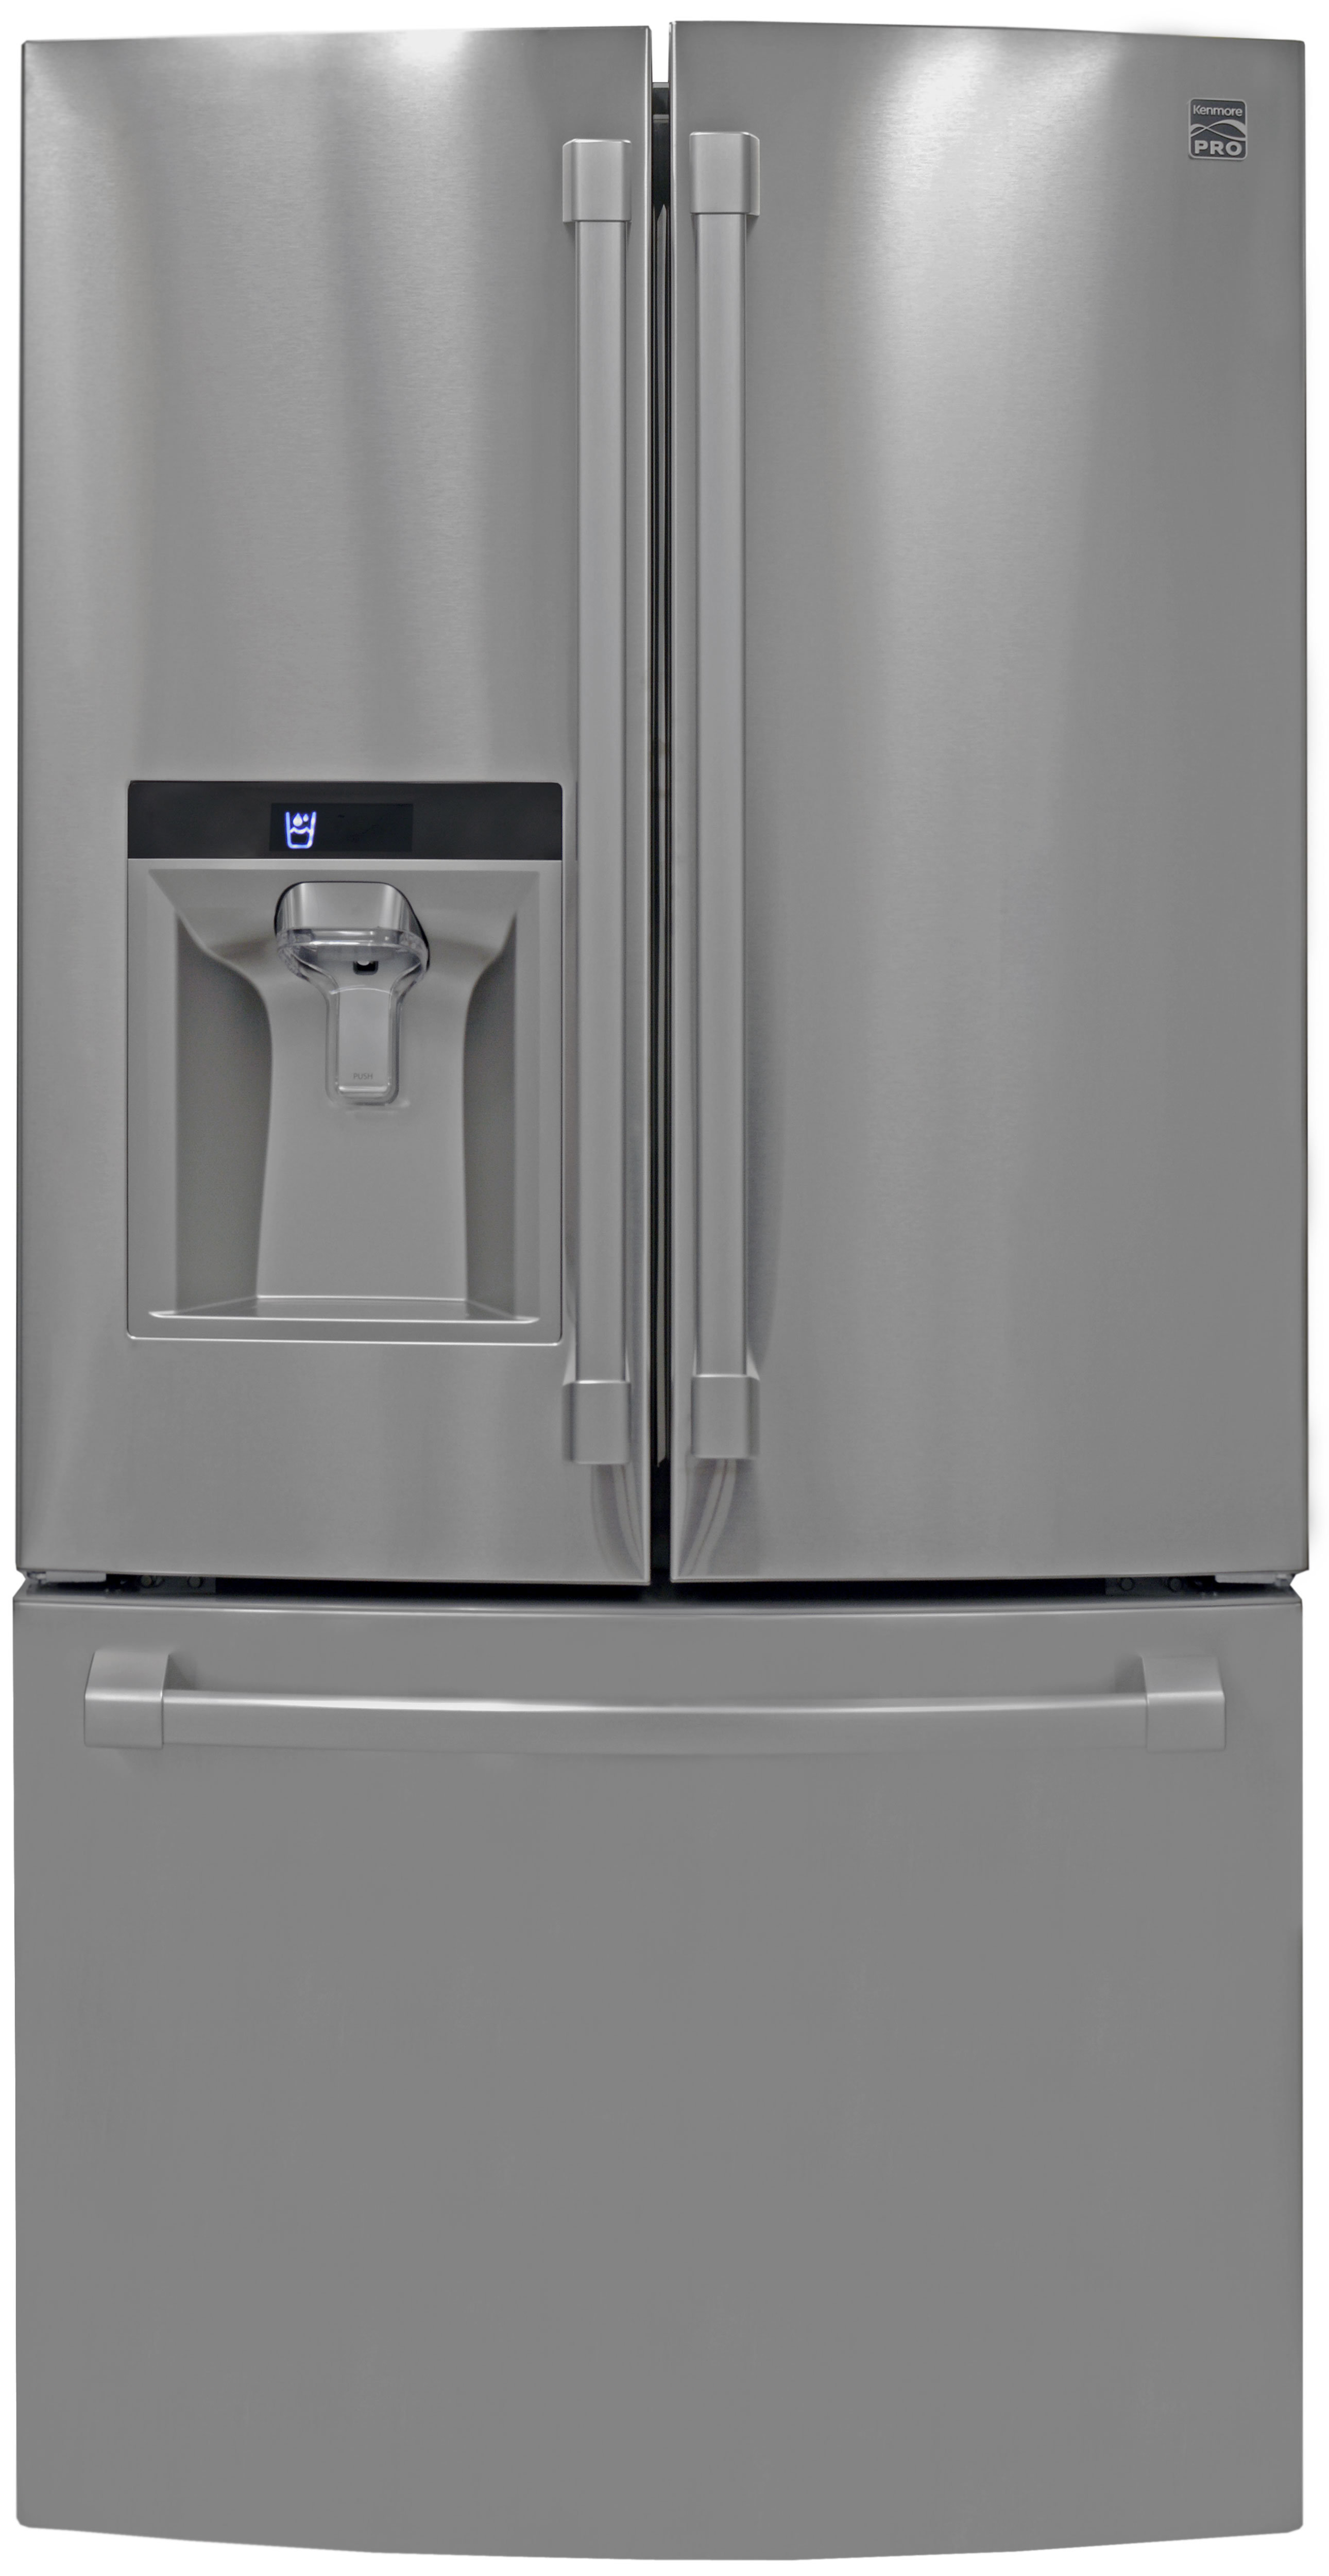 The simple, elegant Kenmore Pro 79993 will look classy in any kitchen.